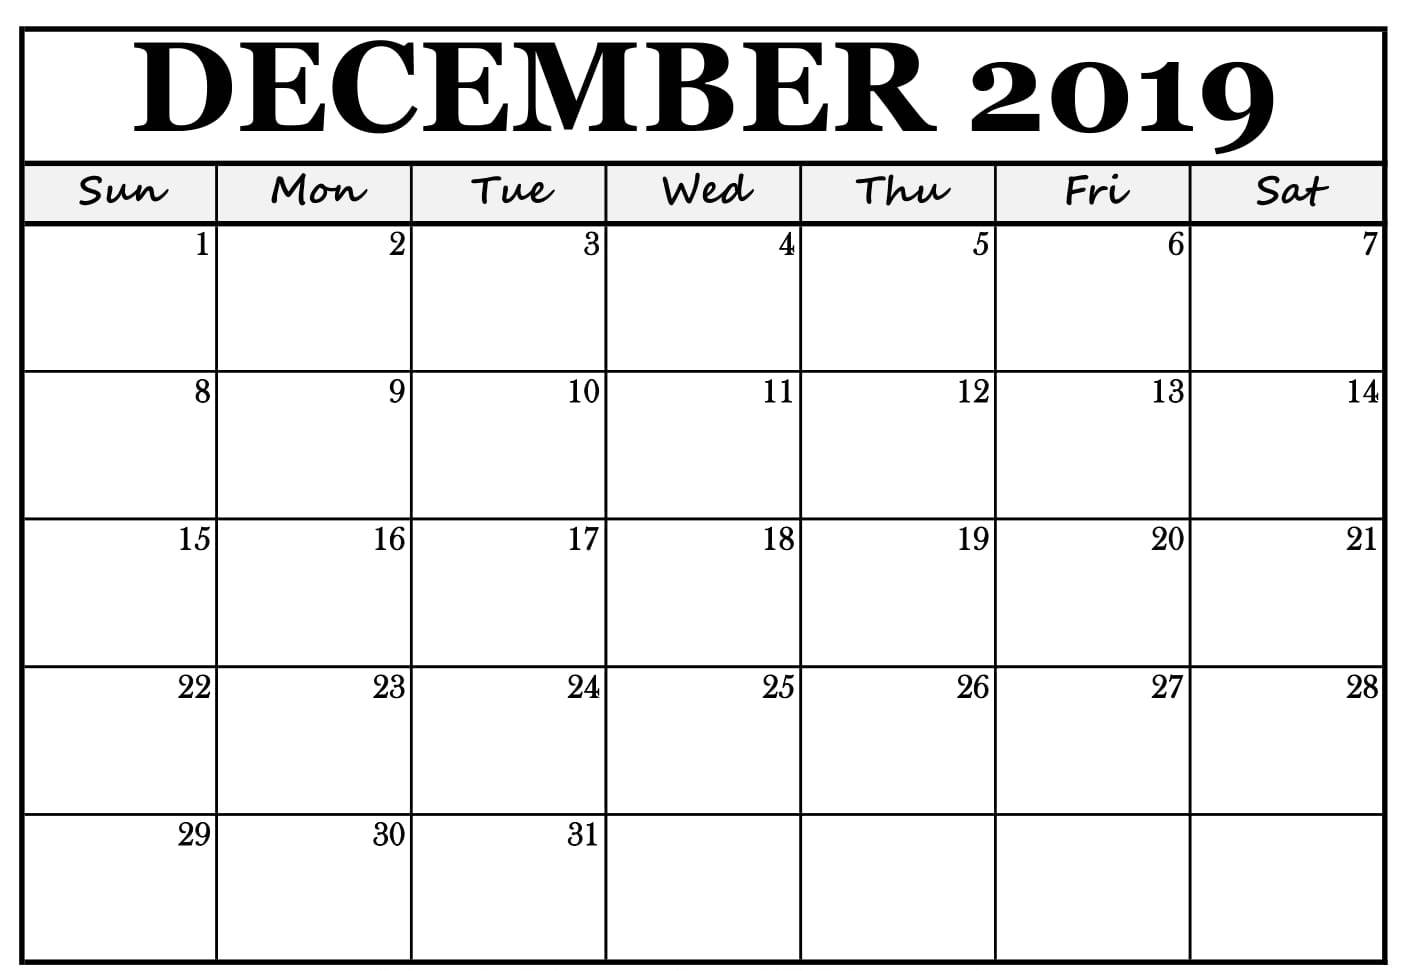 Monthly Calendar Template December 2019